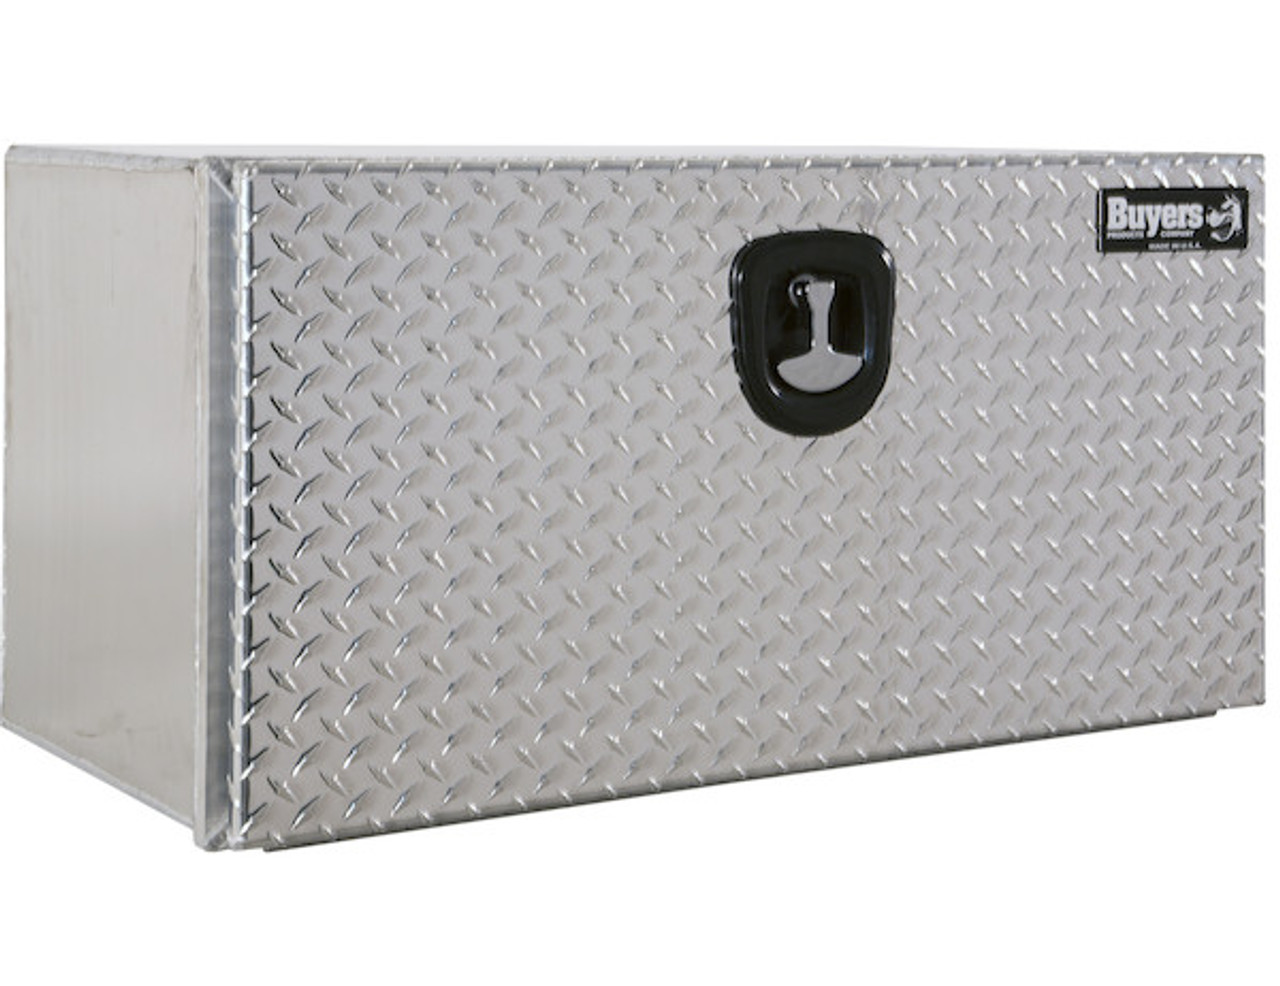 "1706510 BUYERS PRODUCTS XD SMOOTH ALUMINUM UNDERBODY TRUCK TOOLBOX WITH DIAMOND TREAD DOOR 18""HX18""DX48""W"